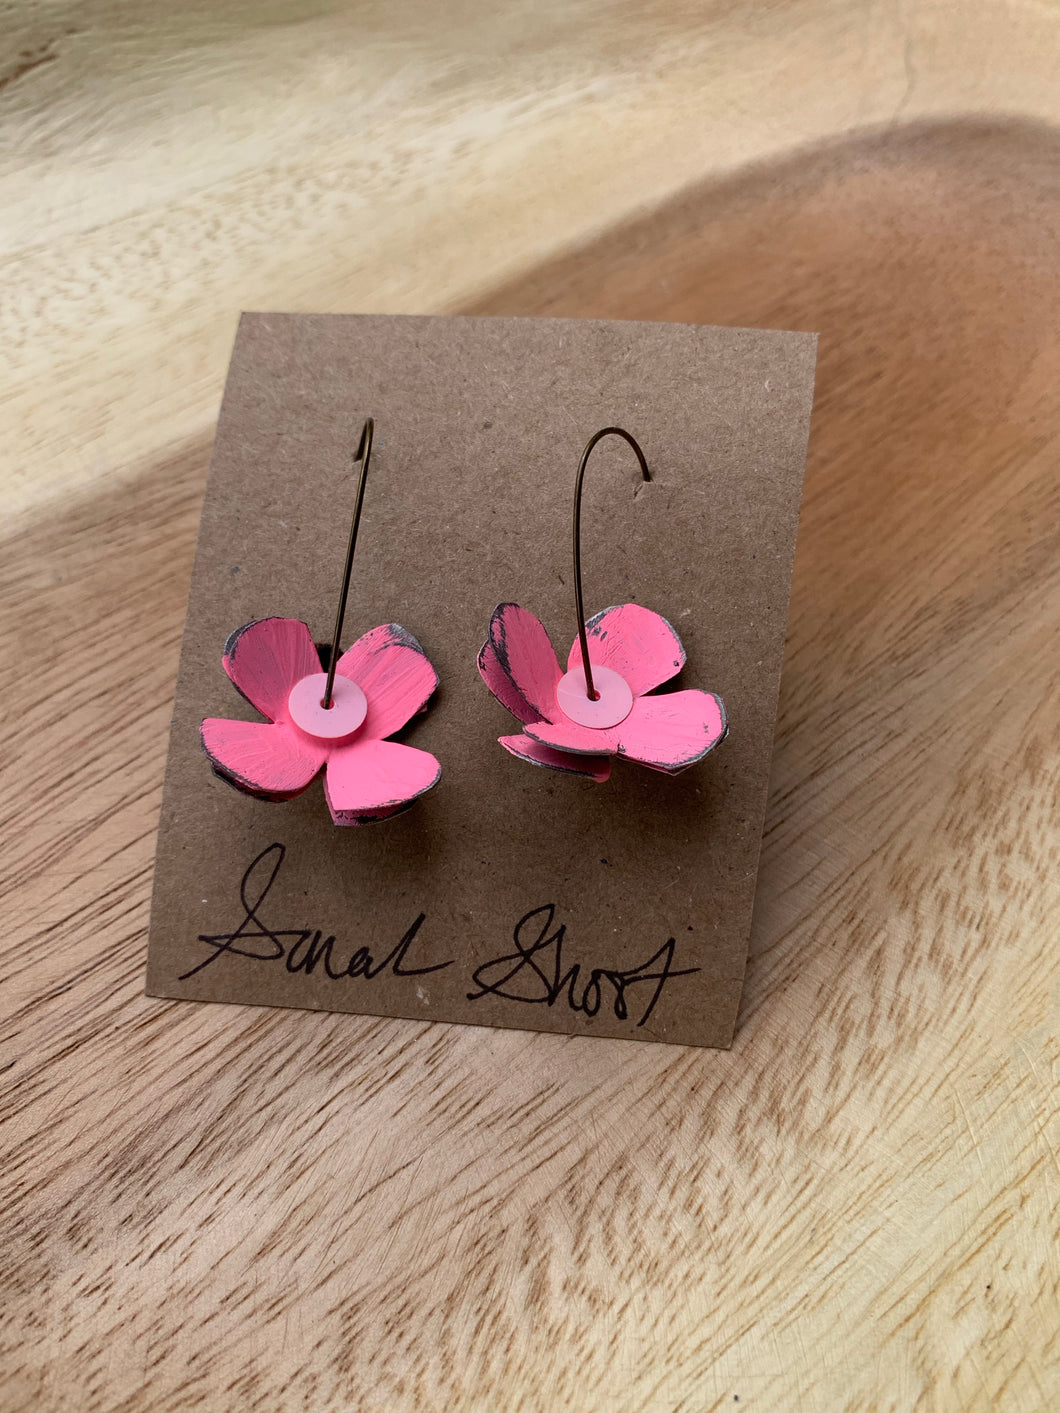 Sarah Shoot Mixed Media Flower Earrings